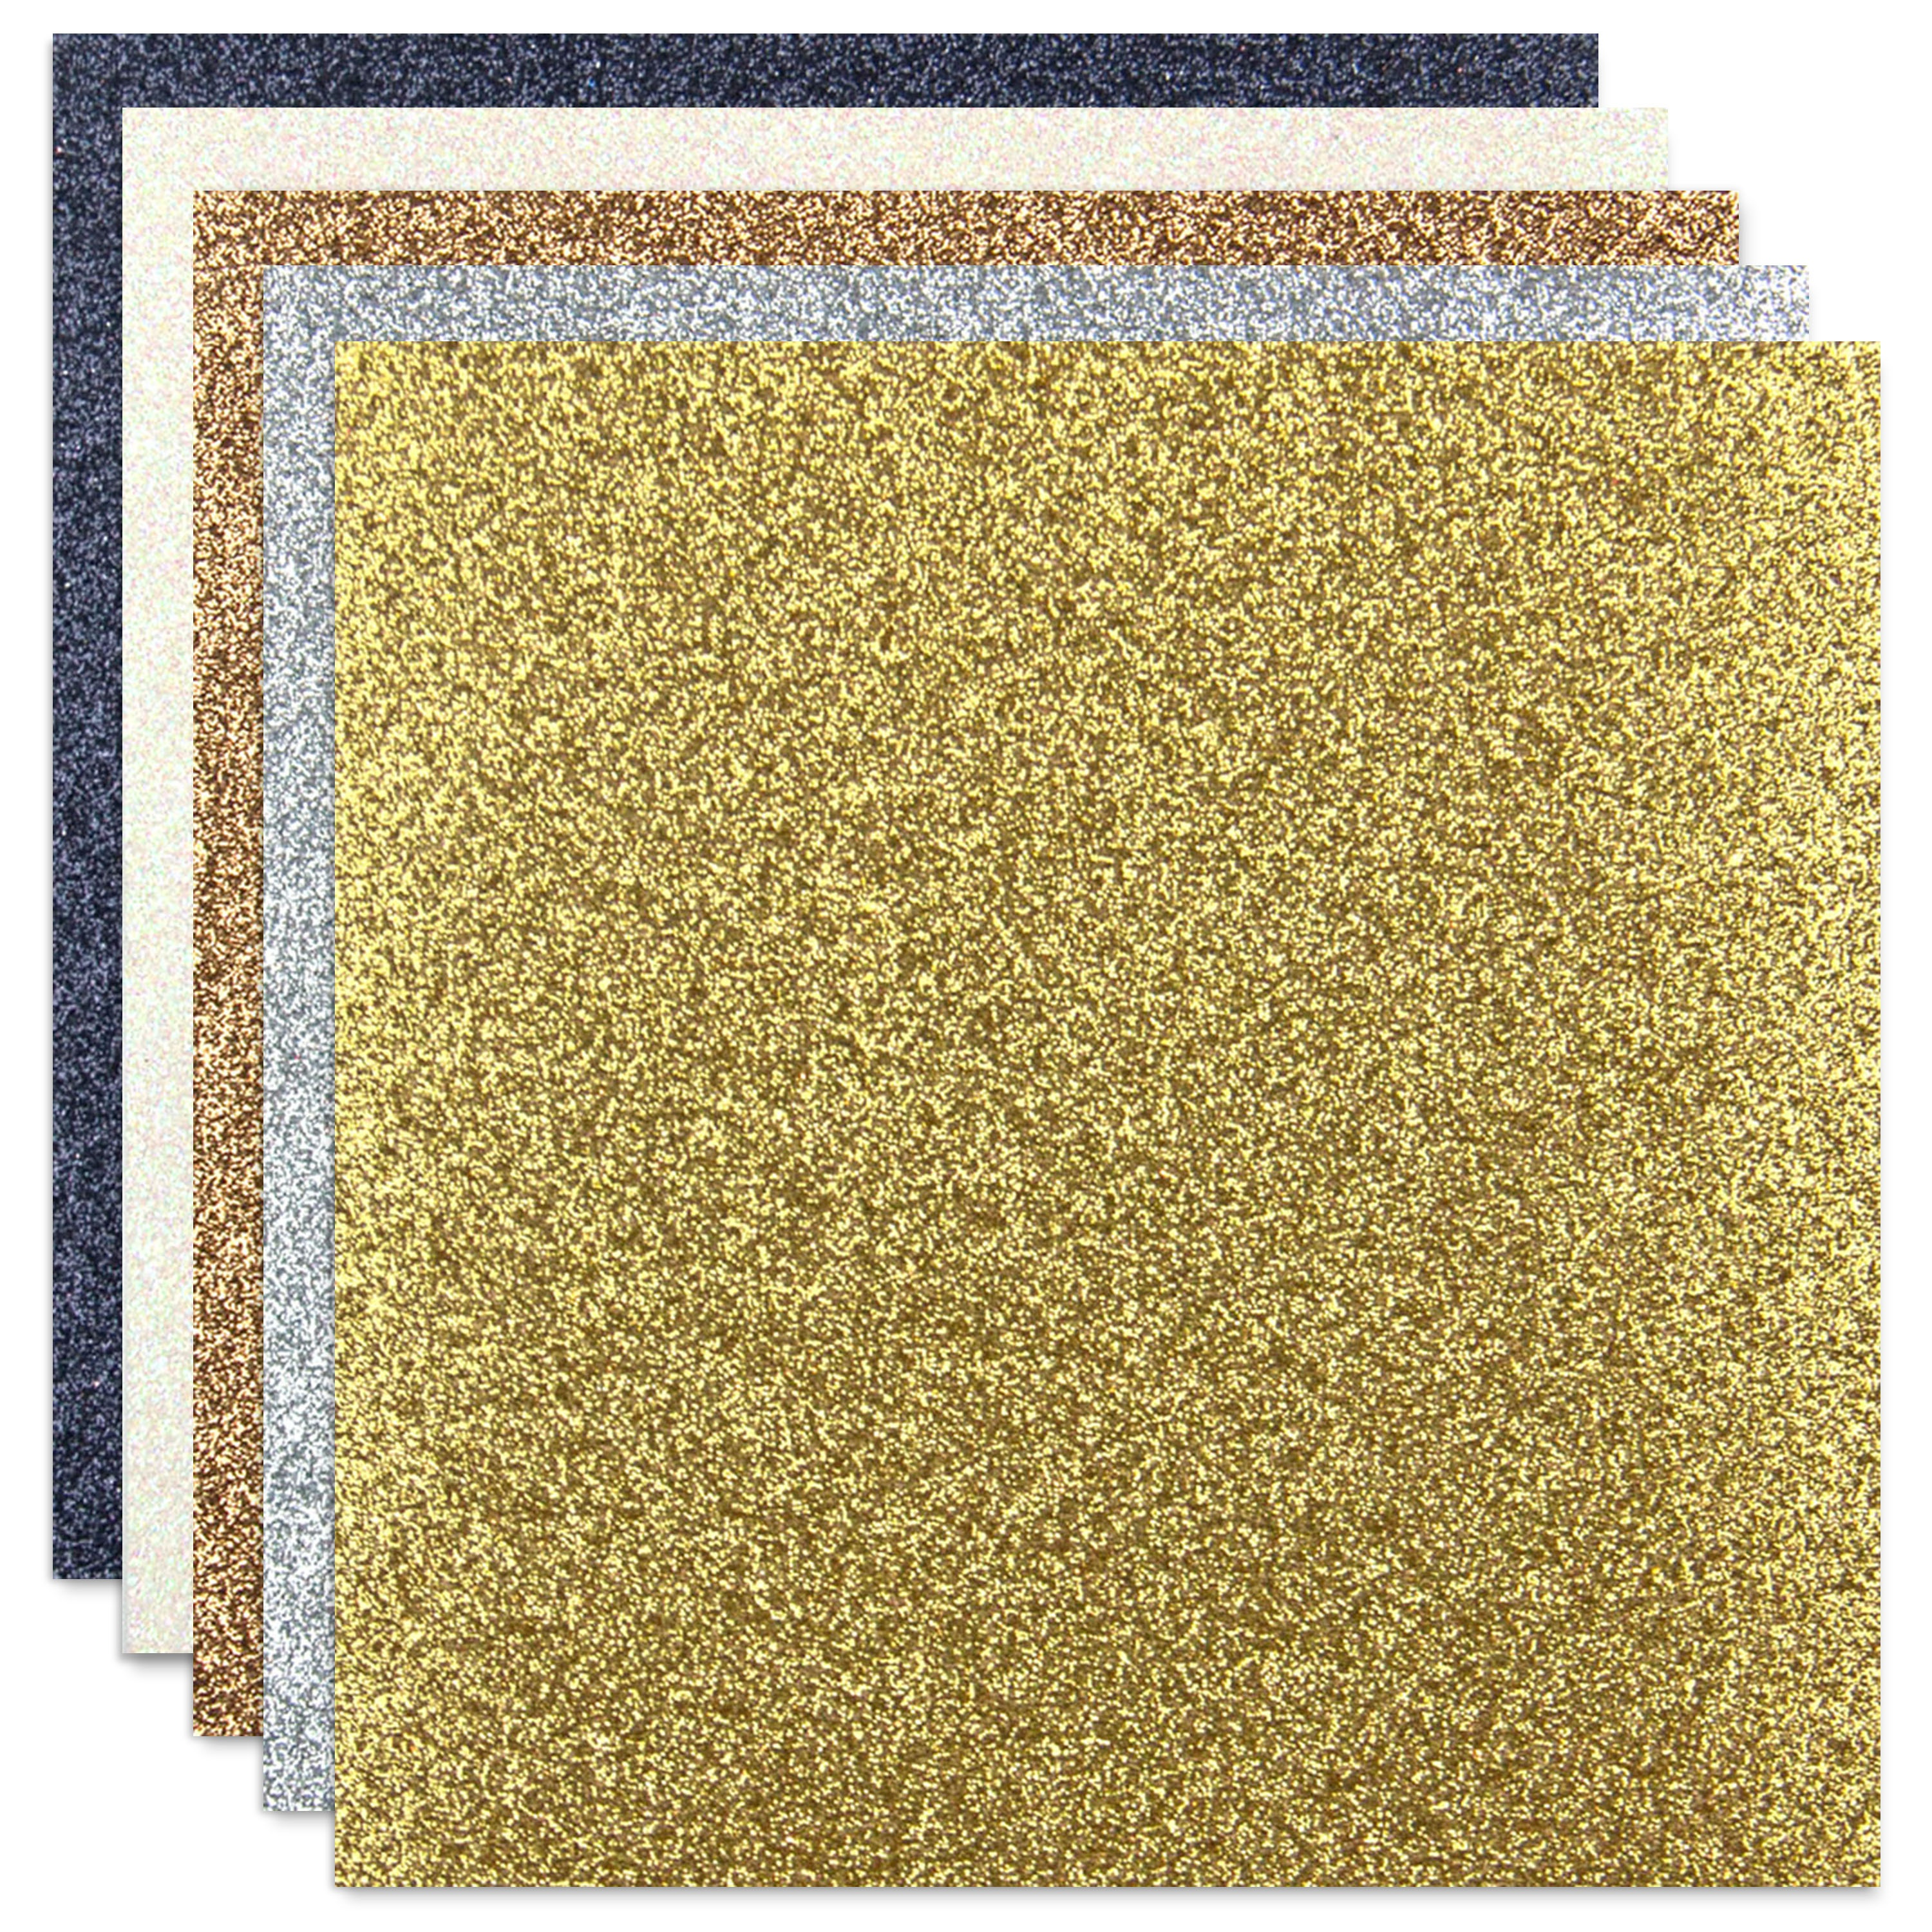 Non-Shed Glitter Cardstock 12X12 10/Pkg-Metallics, 2 each of 5 colors